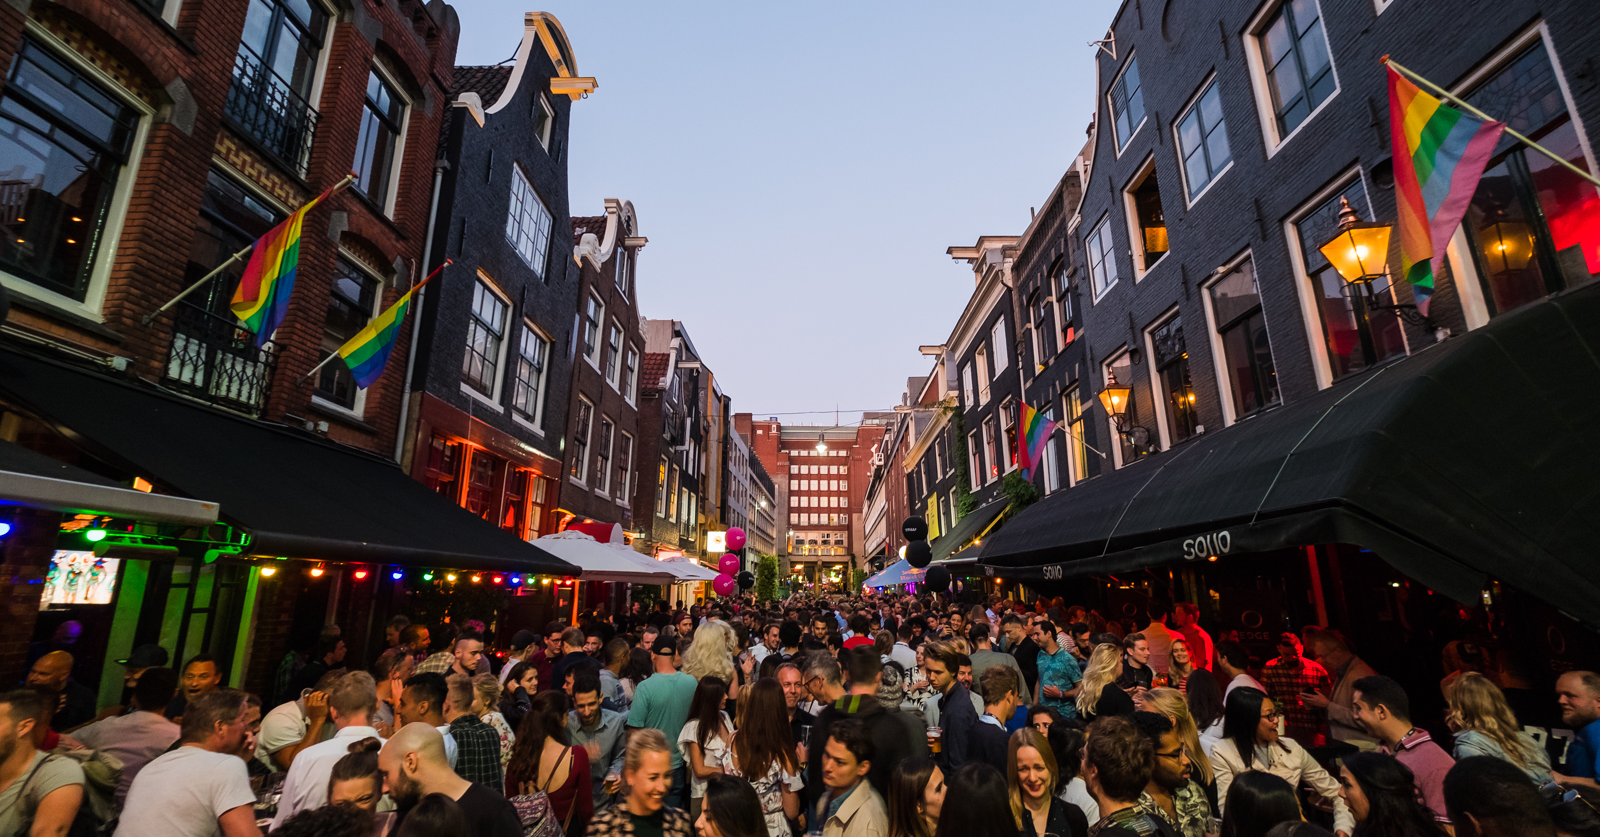 TNW2019 Daily: The opening party is going to be lit